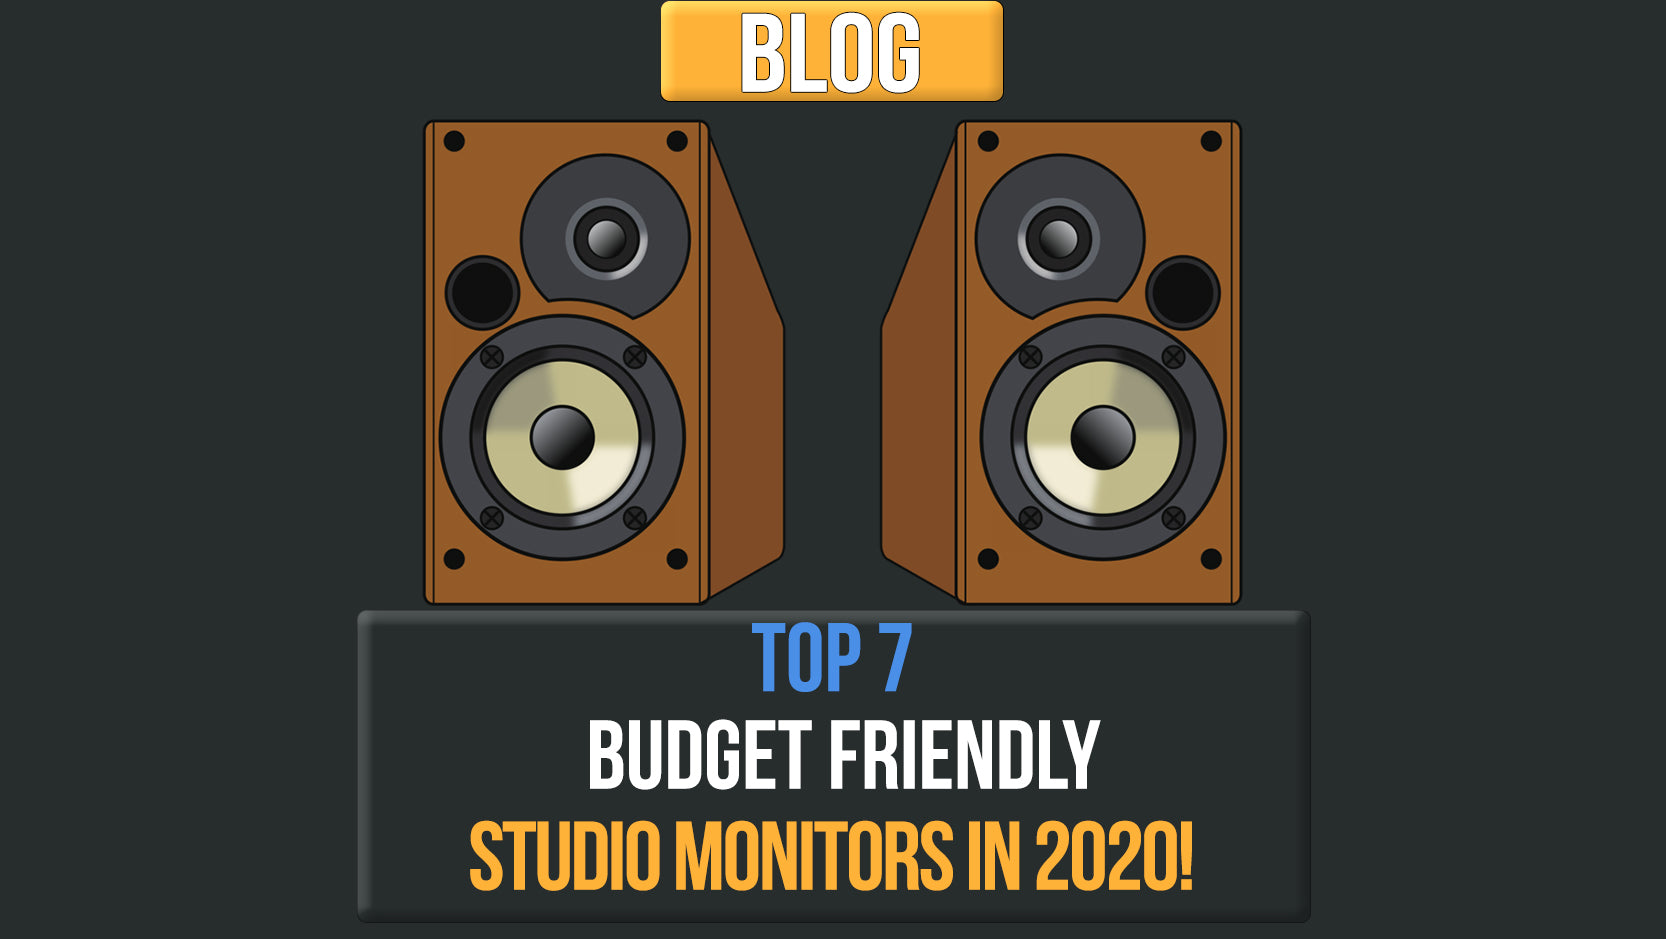 Top 7 Budget Friendly Studio Monitors In 2020!